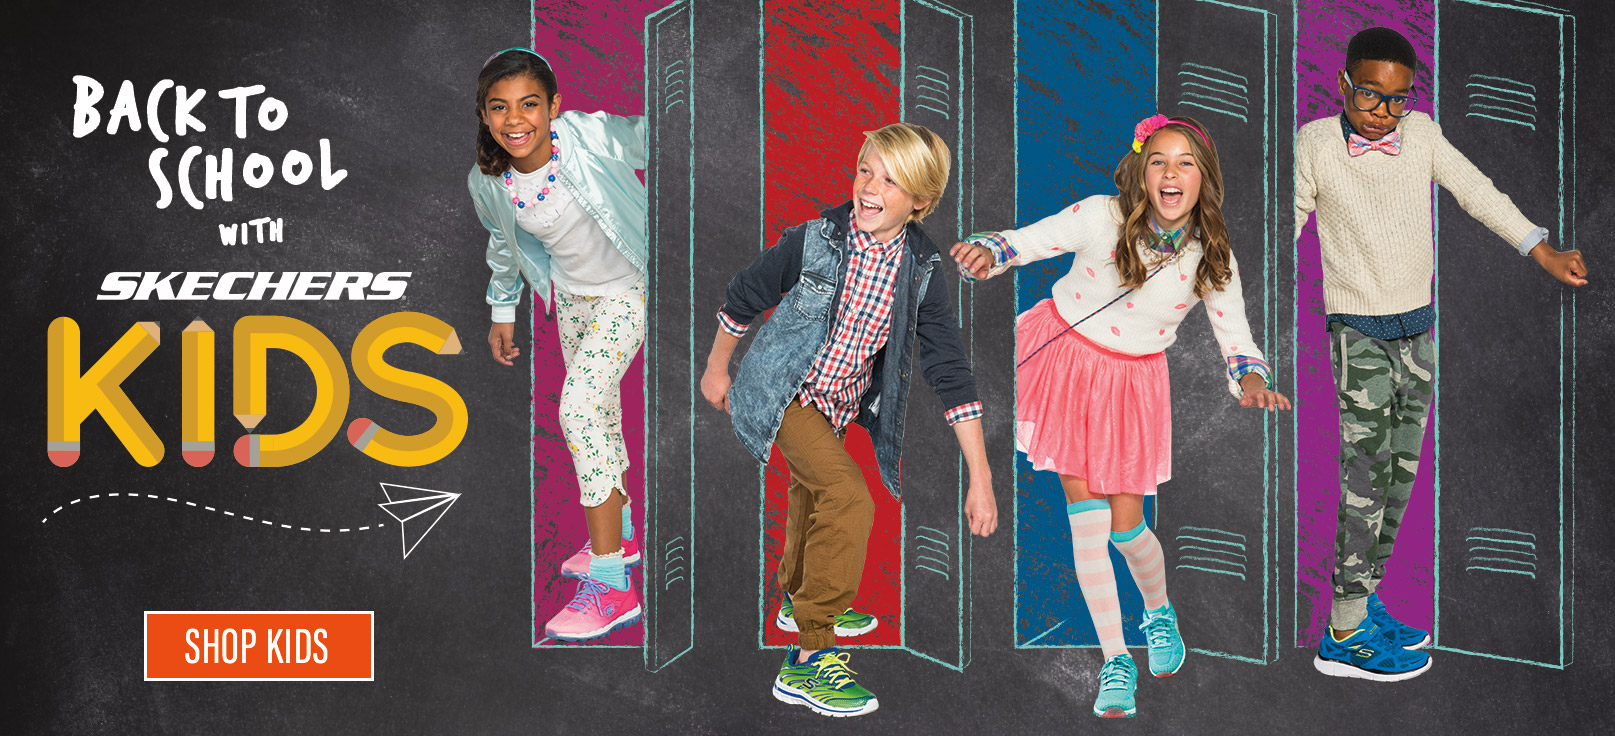 Shop for Kids Back to School Skechers Shoes, Boots, and Sandals including Skechers Burst, GOwalk, Relaxed Fit and Memory Foam.  All sizes and widths available.